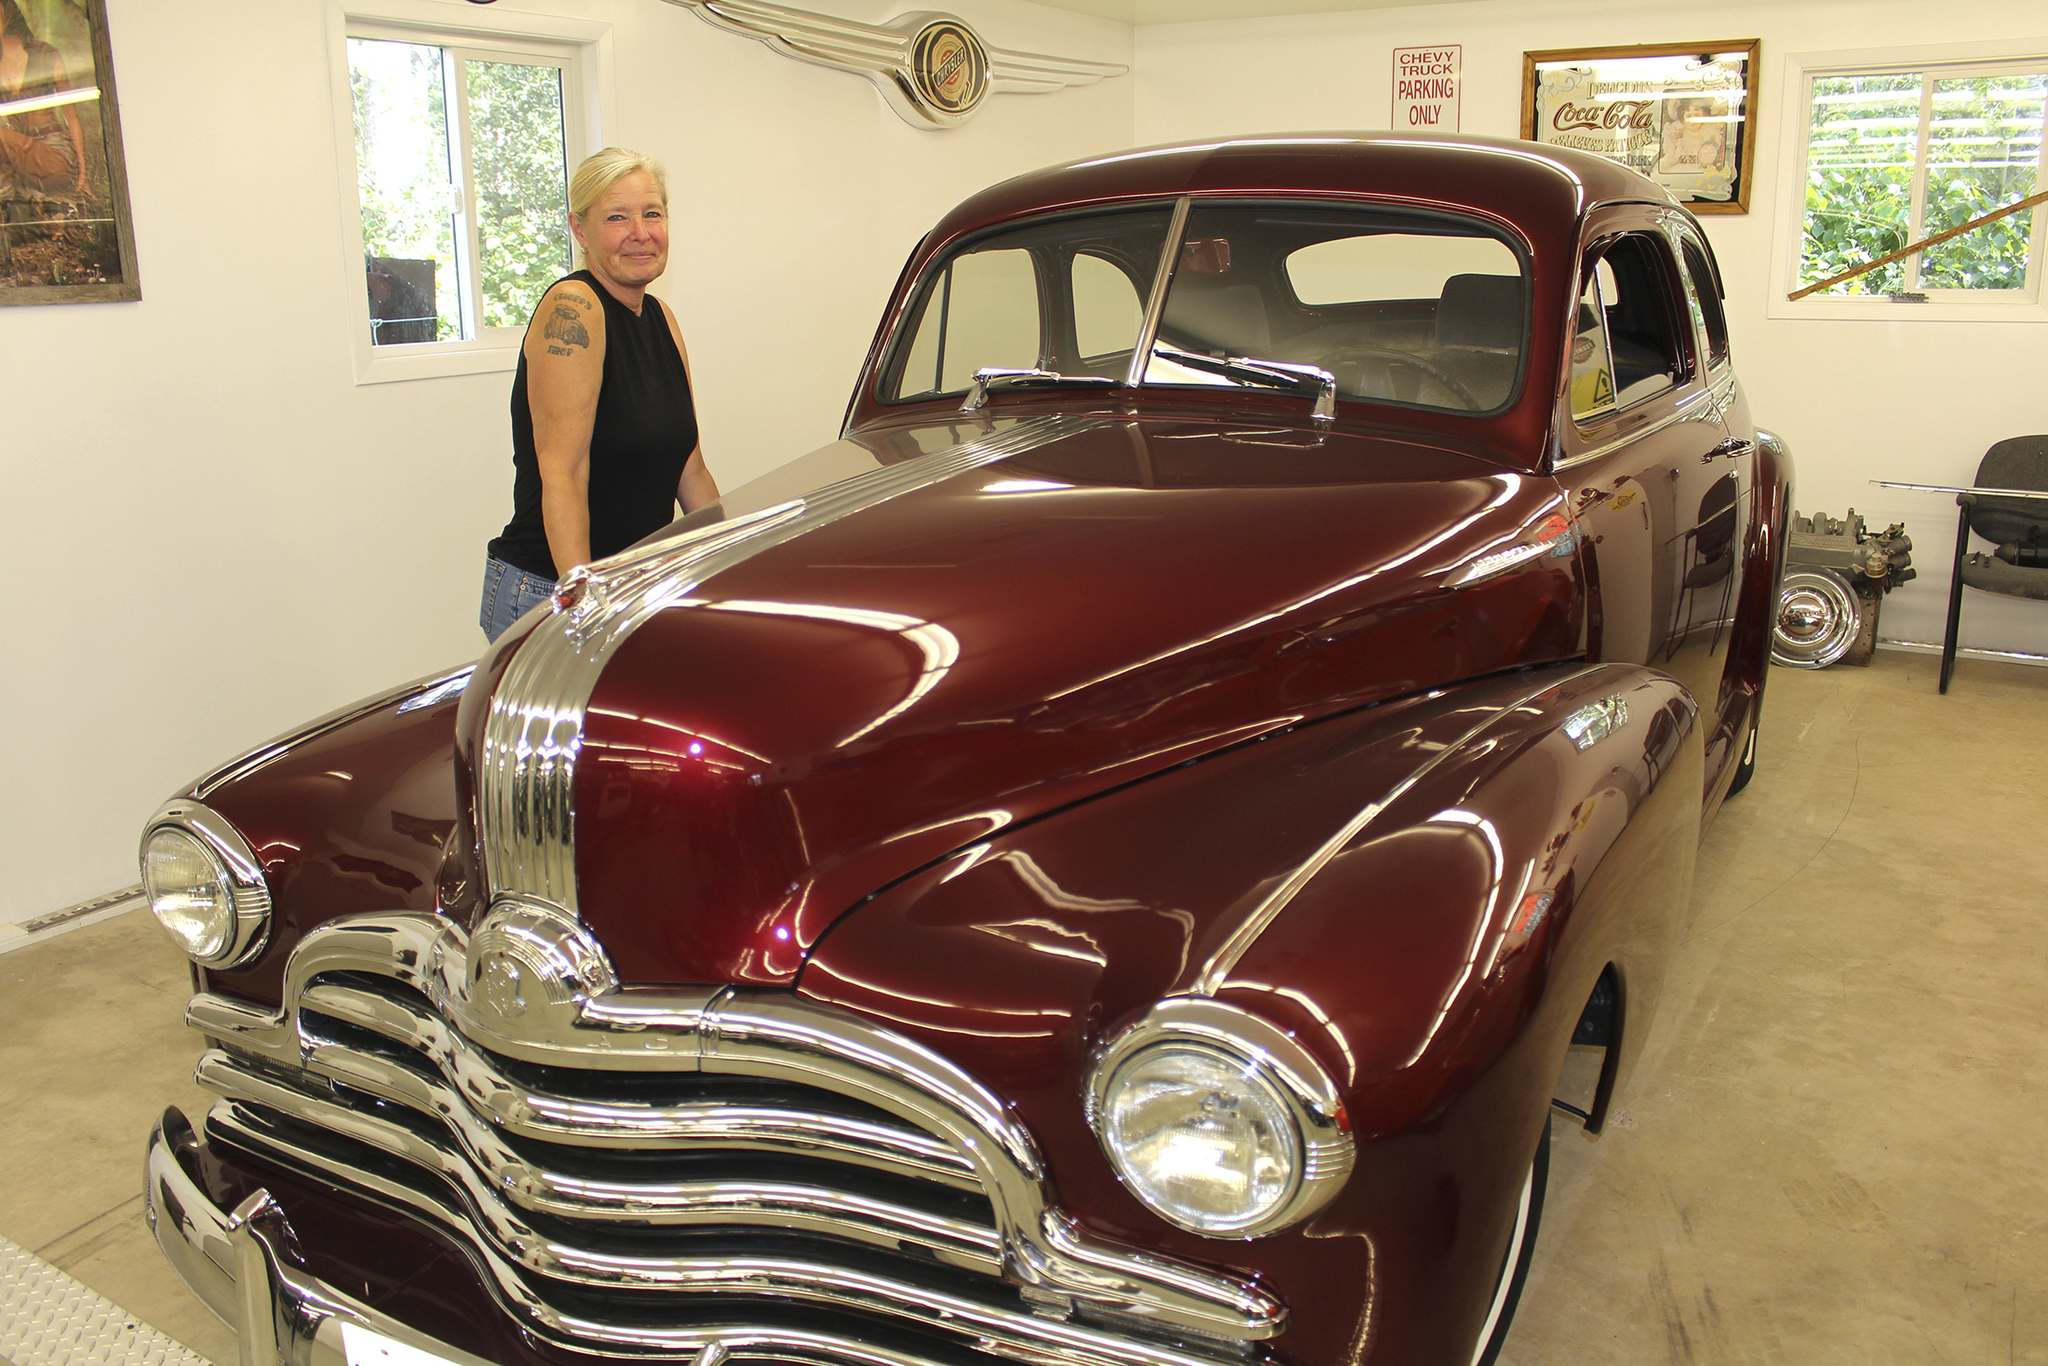 Jean Chopp poses next to a 1947 Pontiac Business Man's Coupe this past Tuesday in the RM of Rosedale. Chopp is responsible for maintaing some of her husband's classic cars when it comes to their upholstery and paint jobs. (Kyle Darbyson/The Brandon Sun)